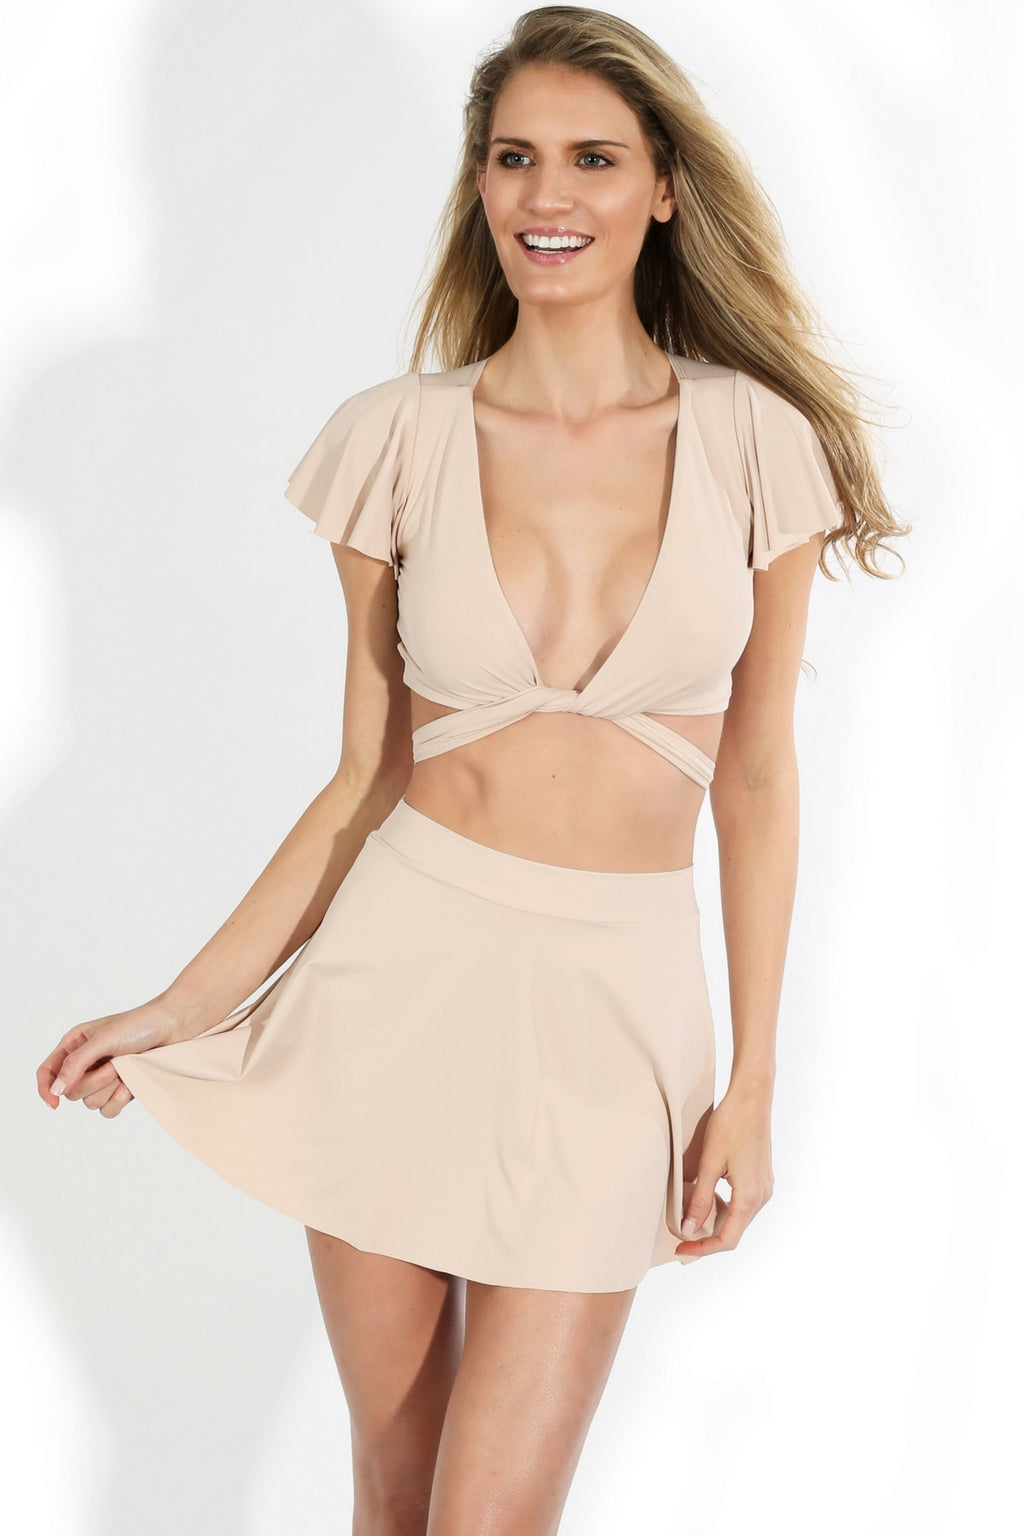 Nude High Waist Skater Skirt Brazilian